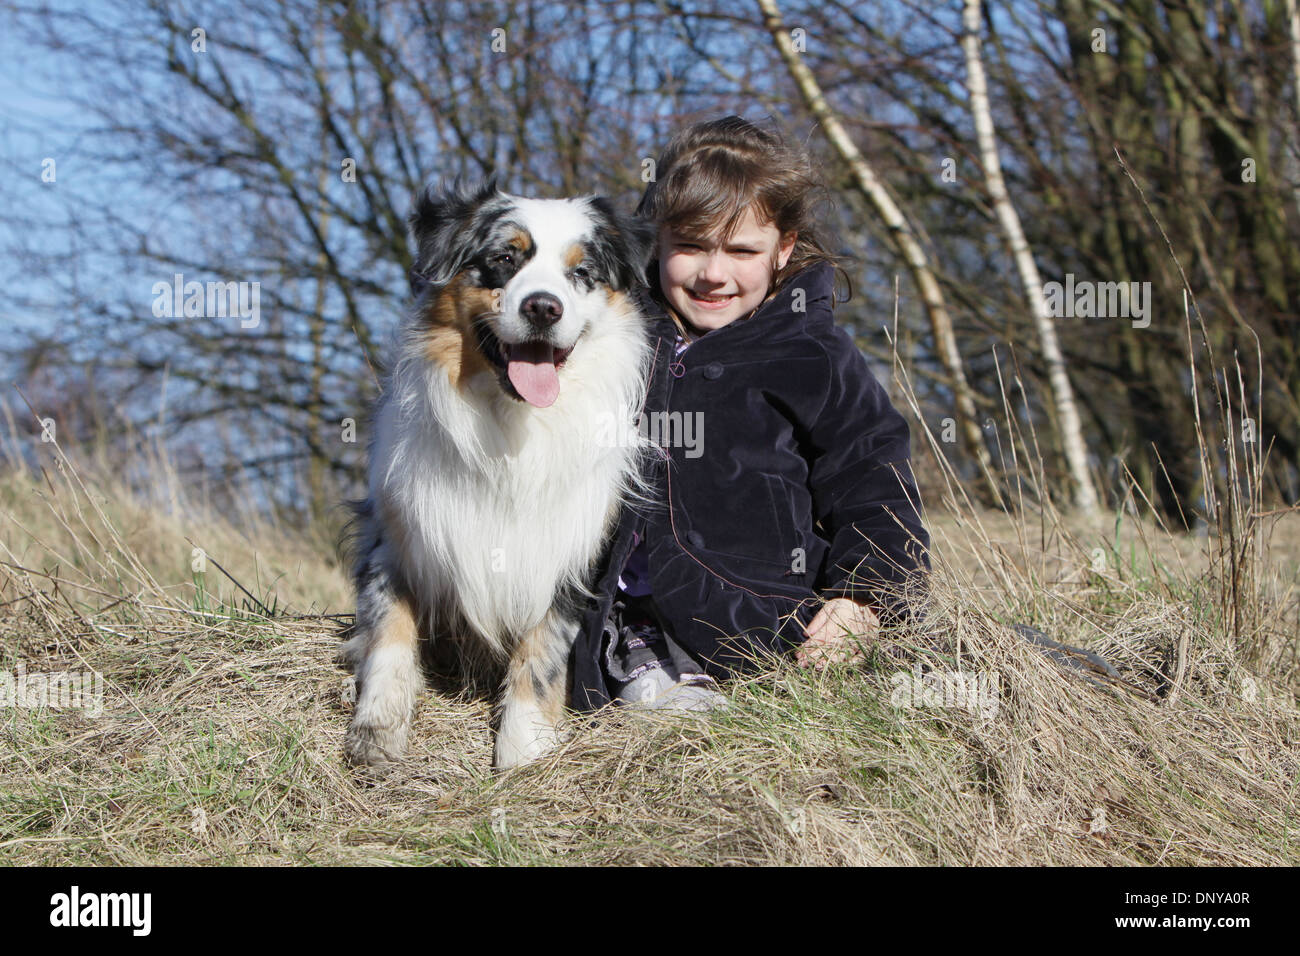 Dog Australian shepherd / Aussie  adult and a child in a meadow - Stock Image